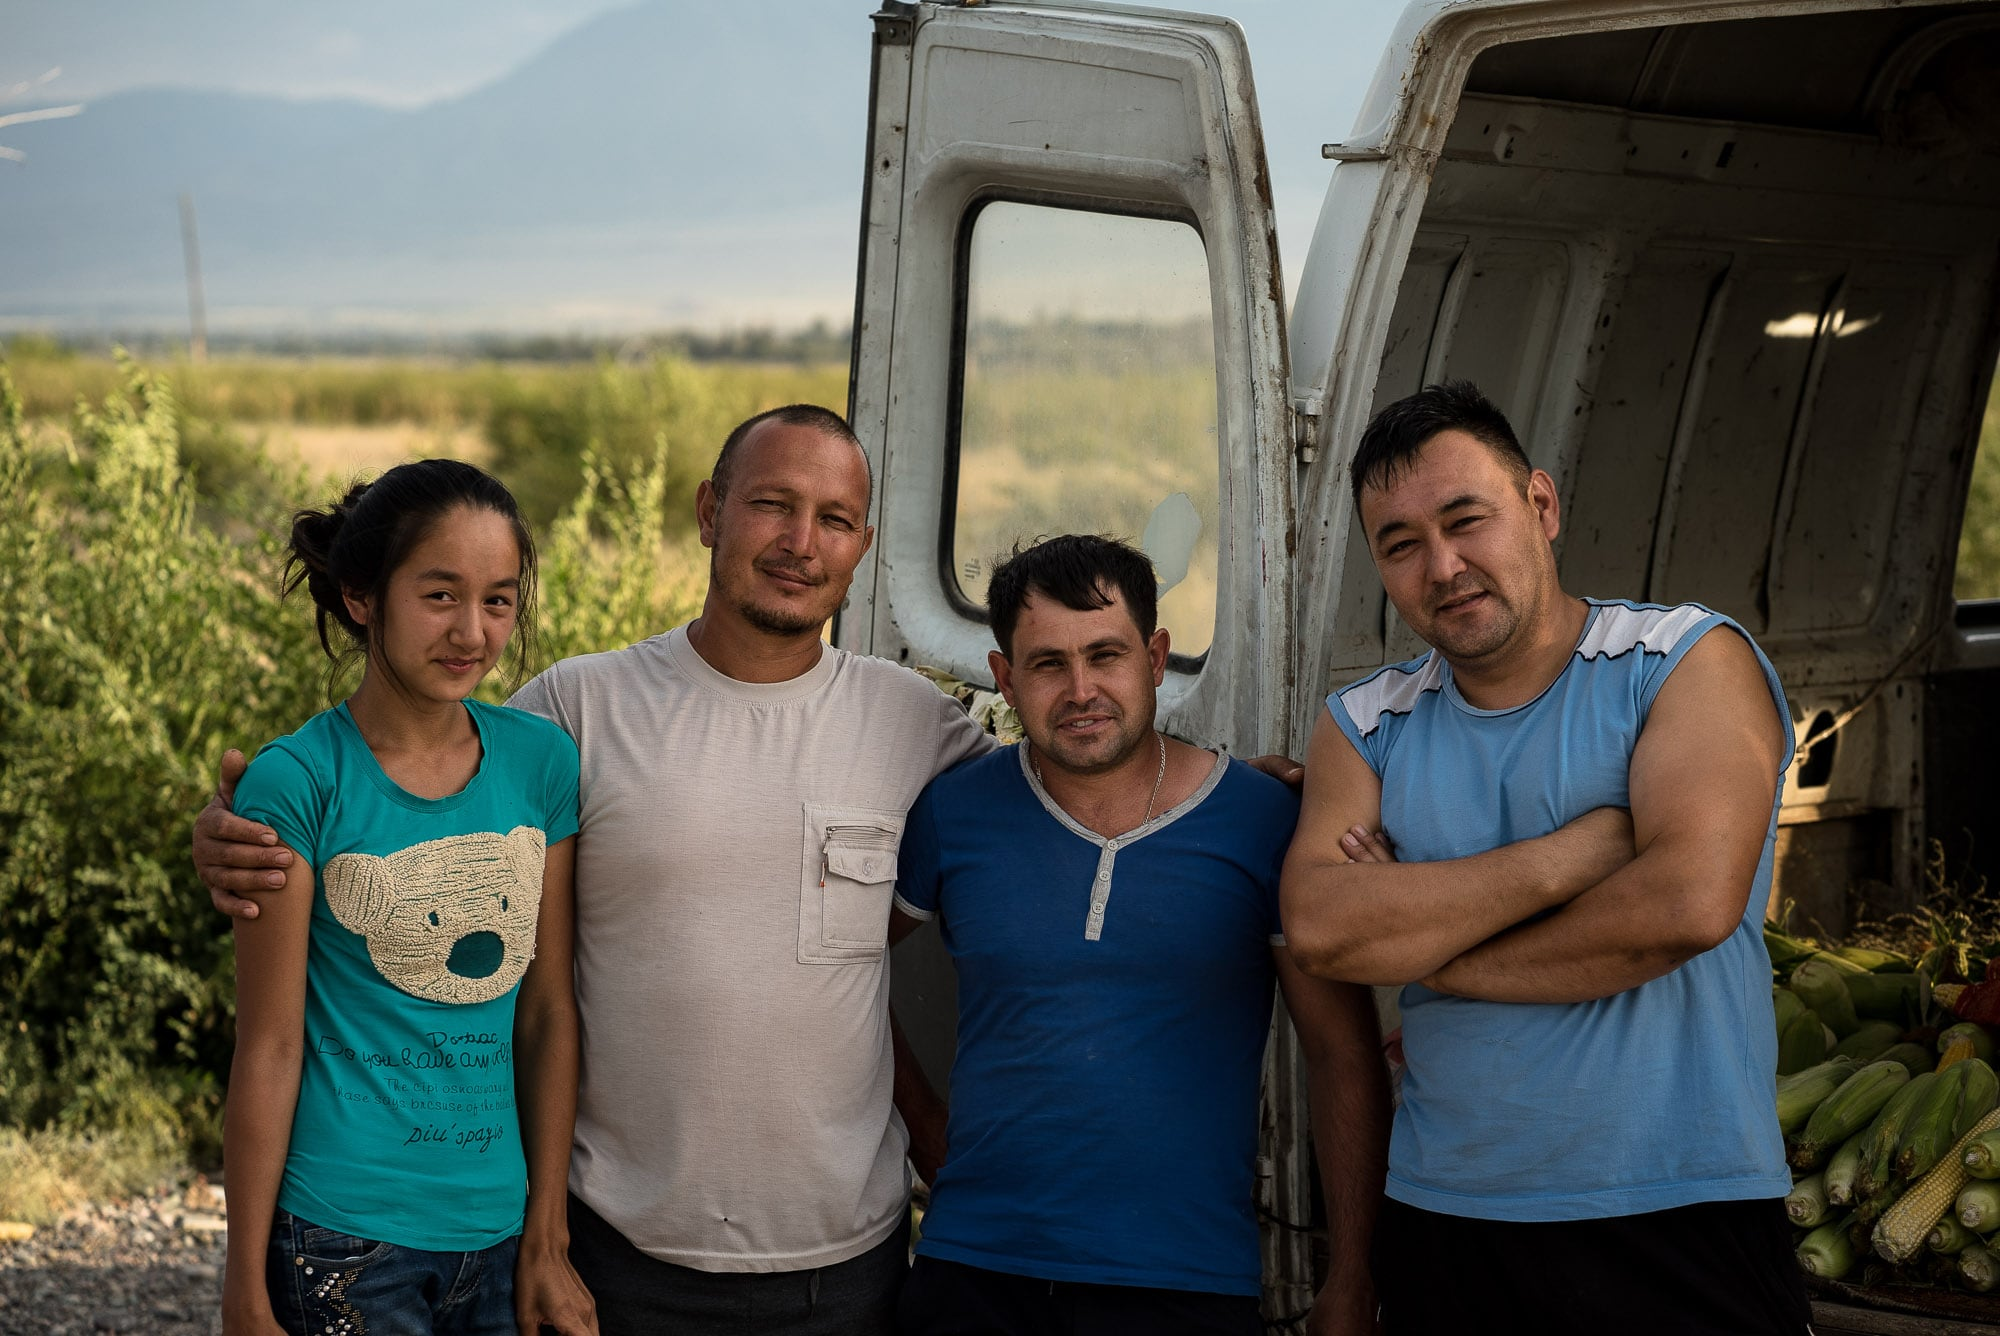 friendly Uyghurs who insist on giving me a corncob